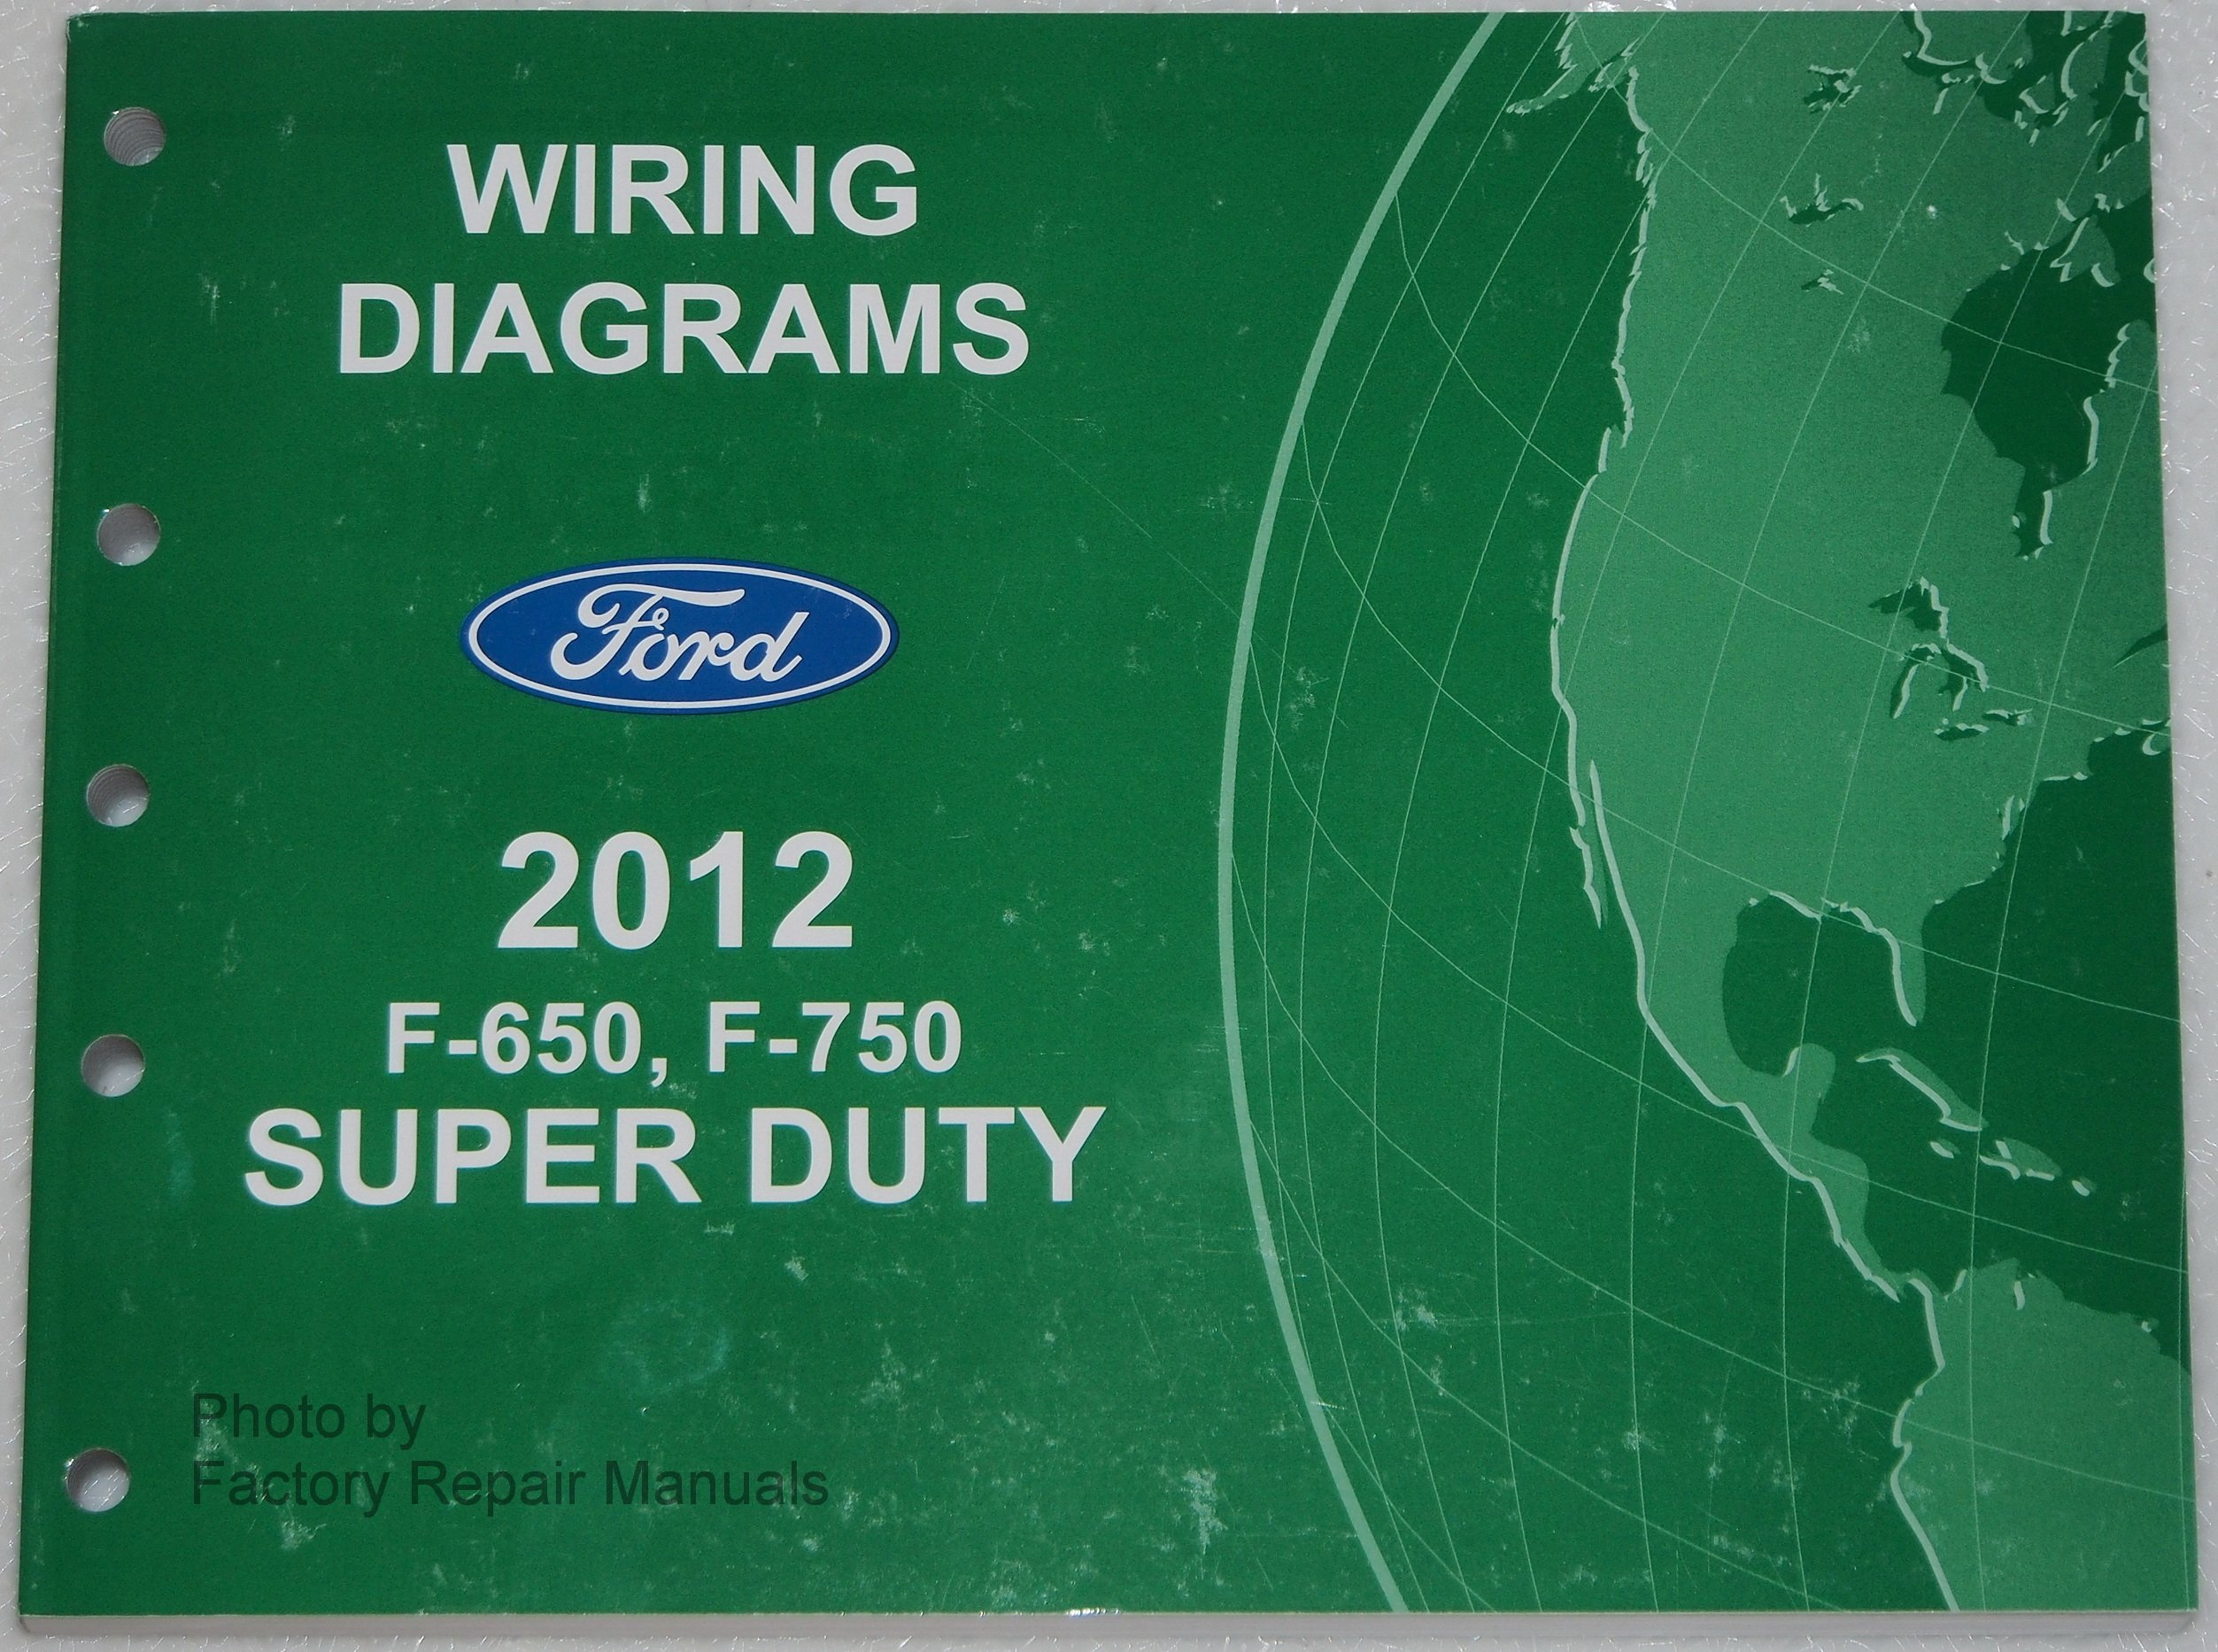 91KkFIScY%2BL 2012 f650 f750 wiring diagram ford motor company amazon com books 2013 ford wiring diagram at mr168.co